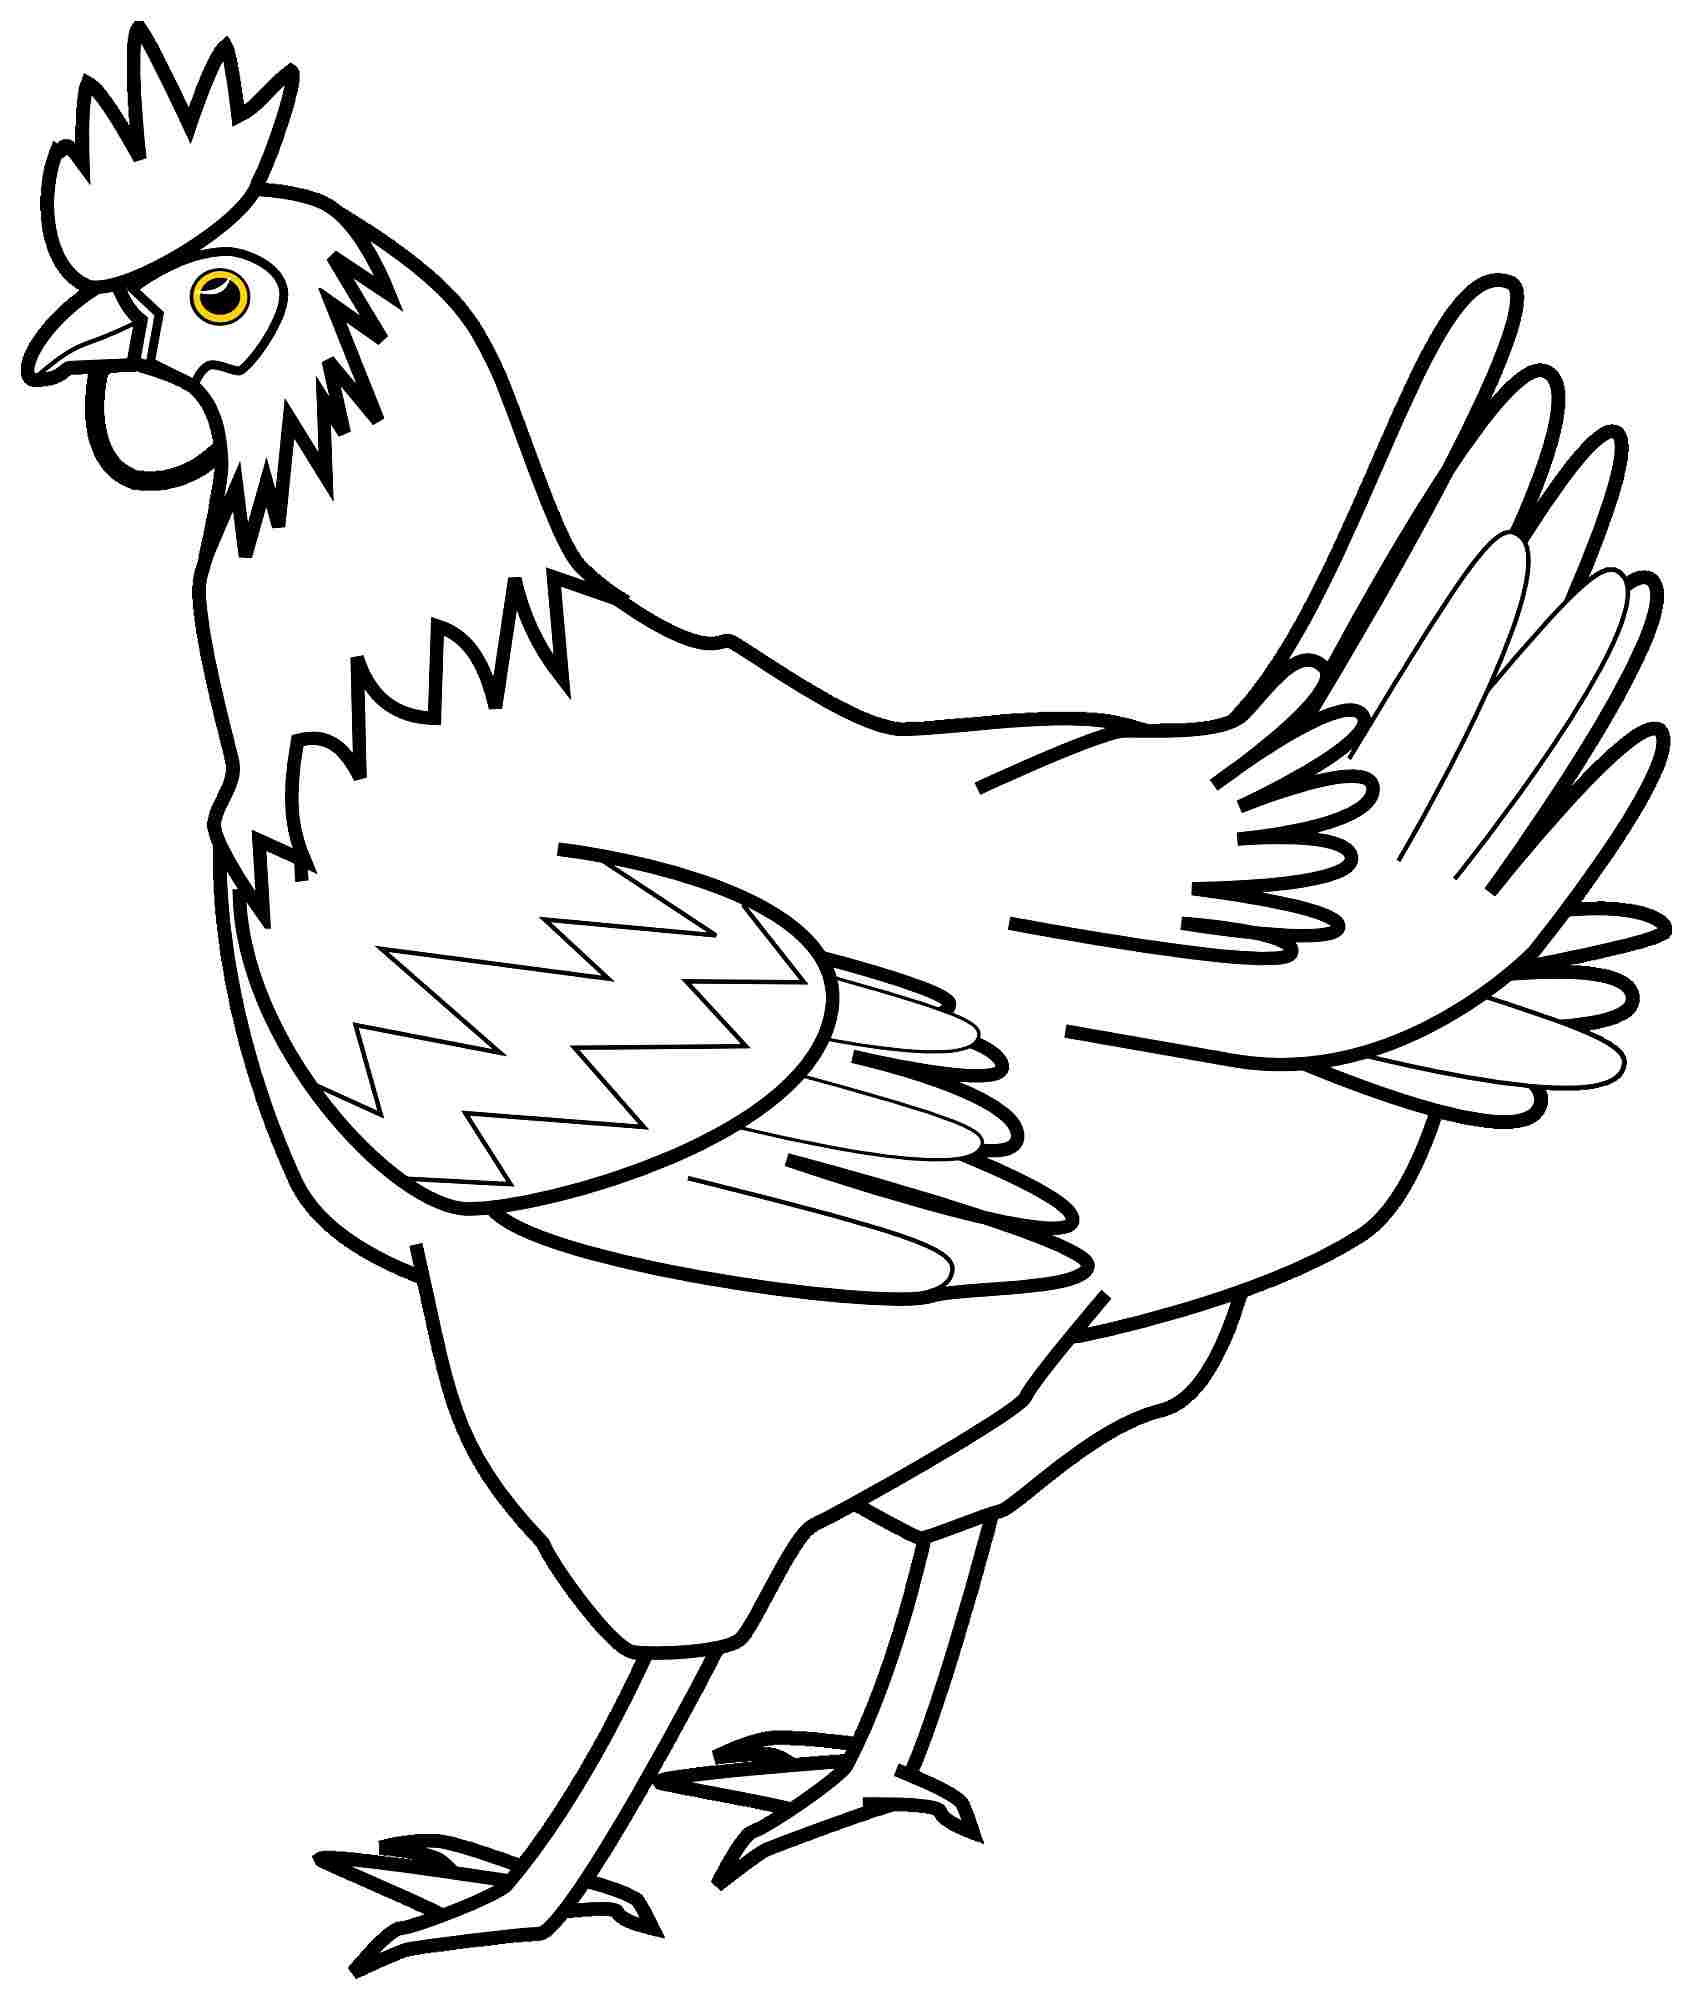 26 drawing of hen free cliparts that you can download to you computer ...